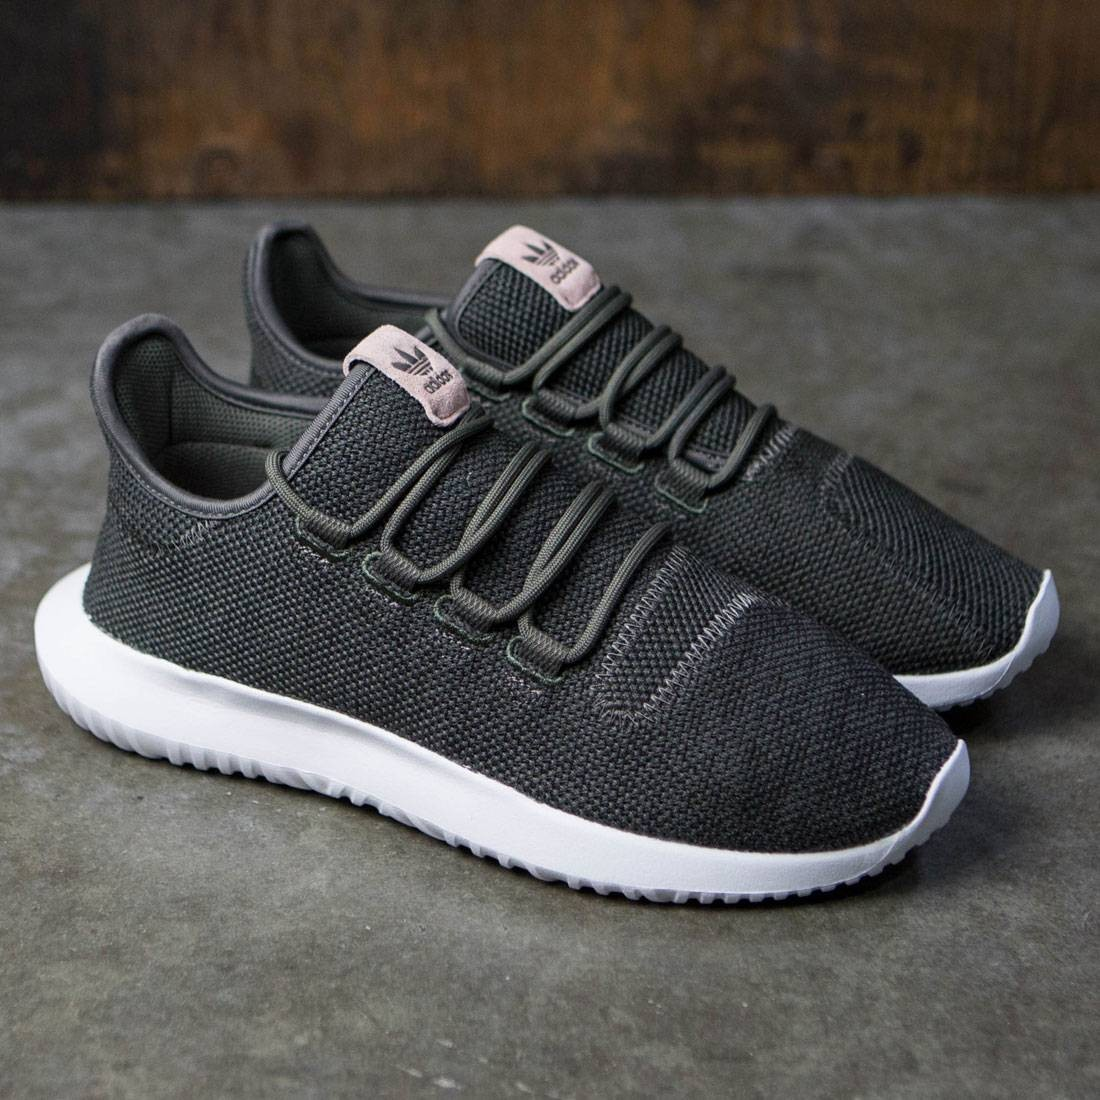 adidas tubular shadow womens black